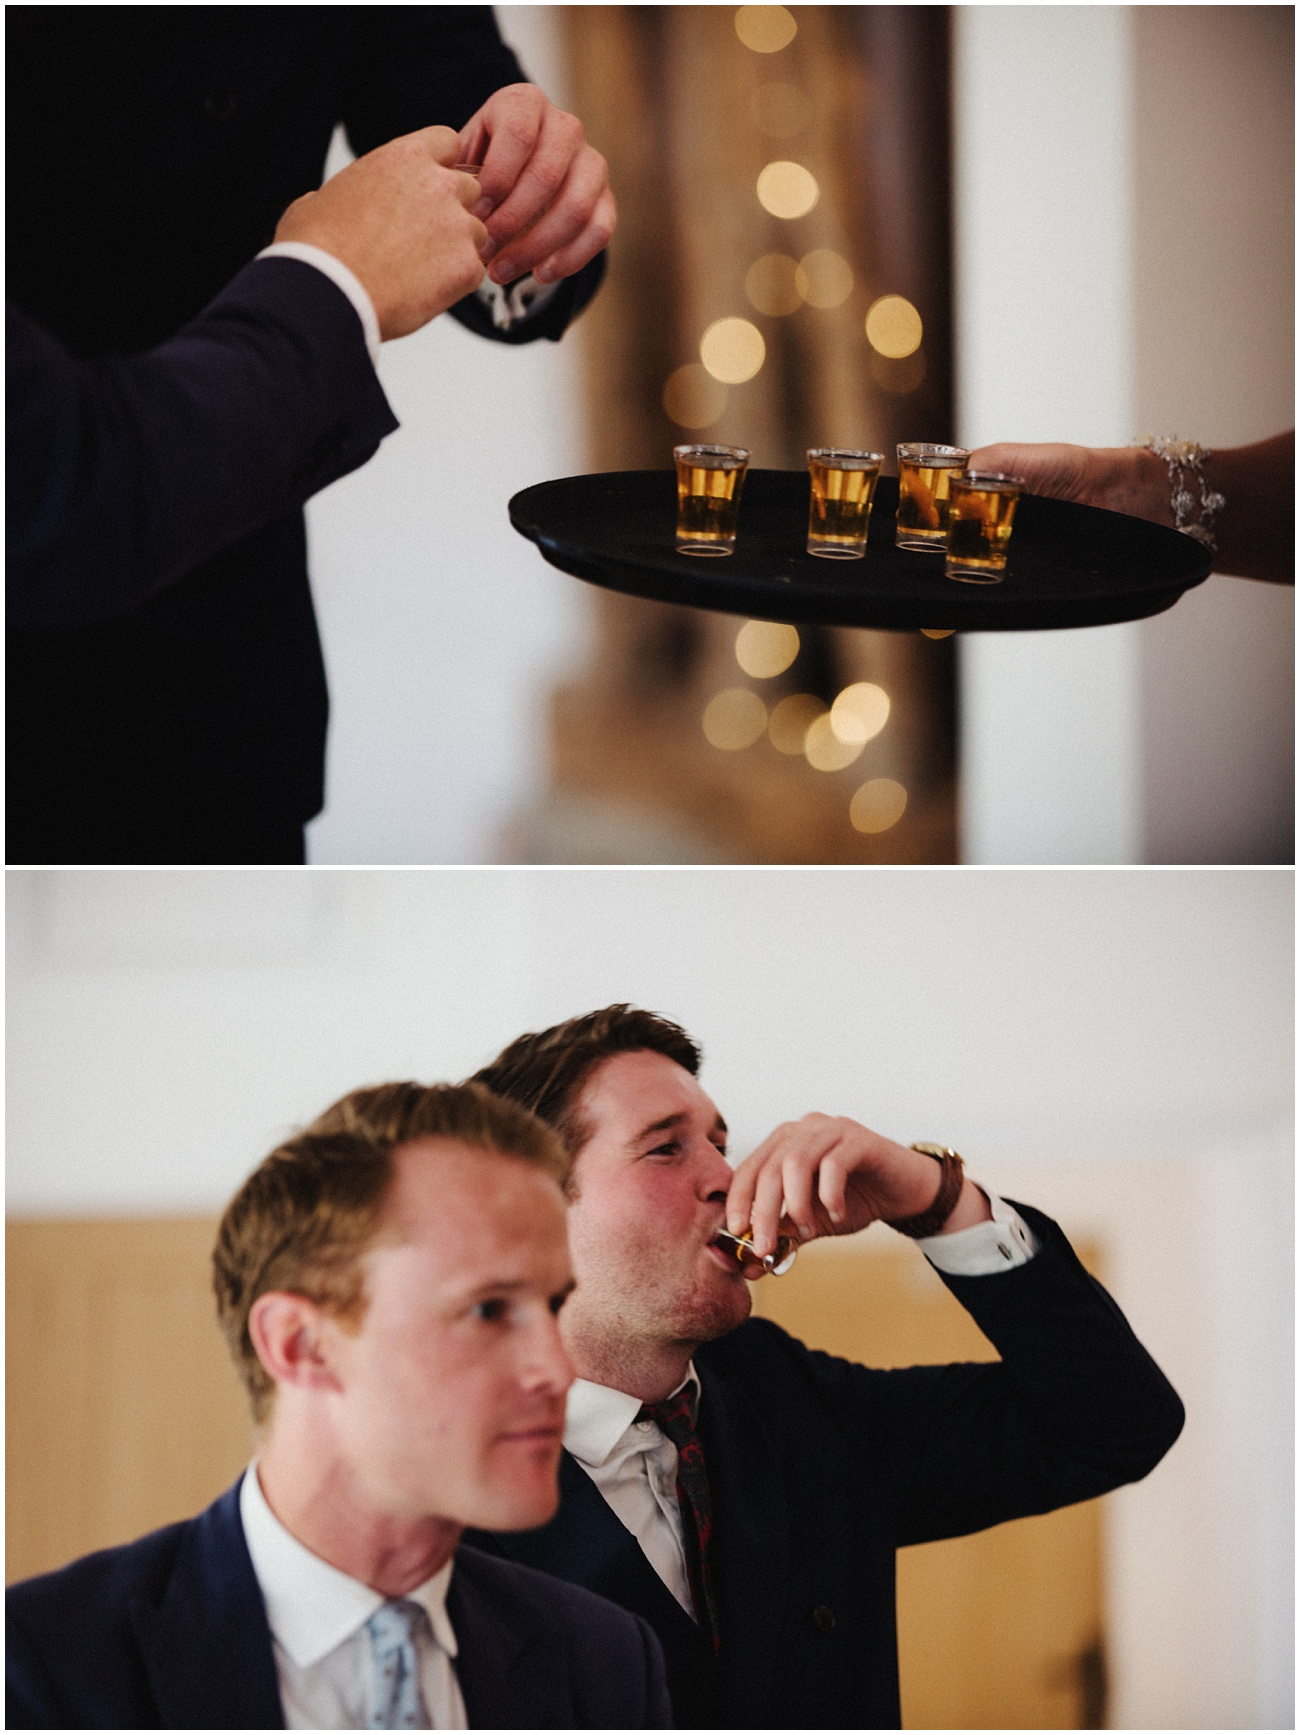 The guests drink shots during the speeches